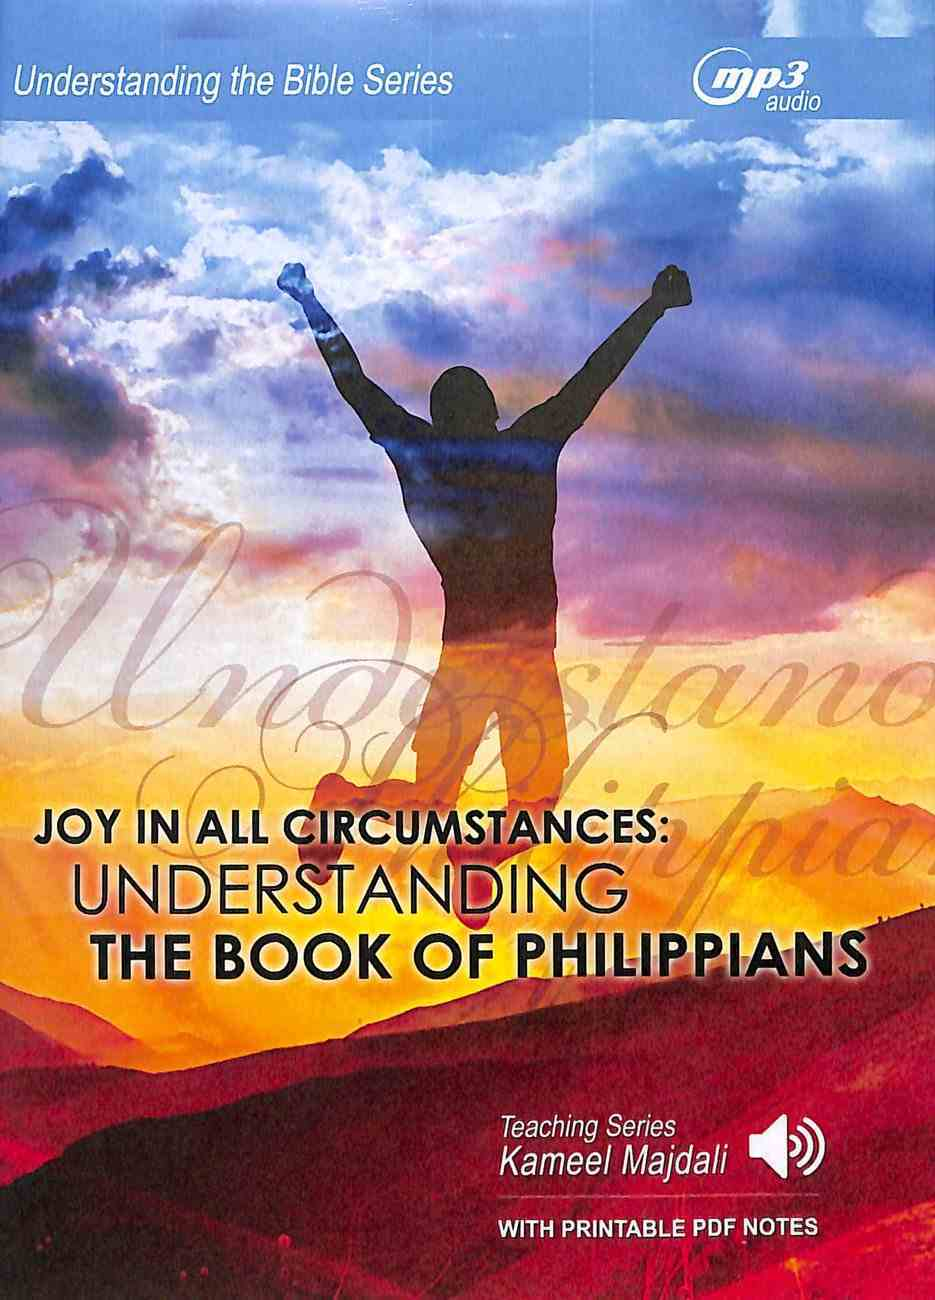 Joy in All Circumstances : Understanding the Book of Philippians (With Printable Pdf Notes) (MP3 Audio, 7.5 Hrs) (Understanding The Bible Audio Series) CD